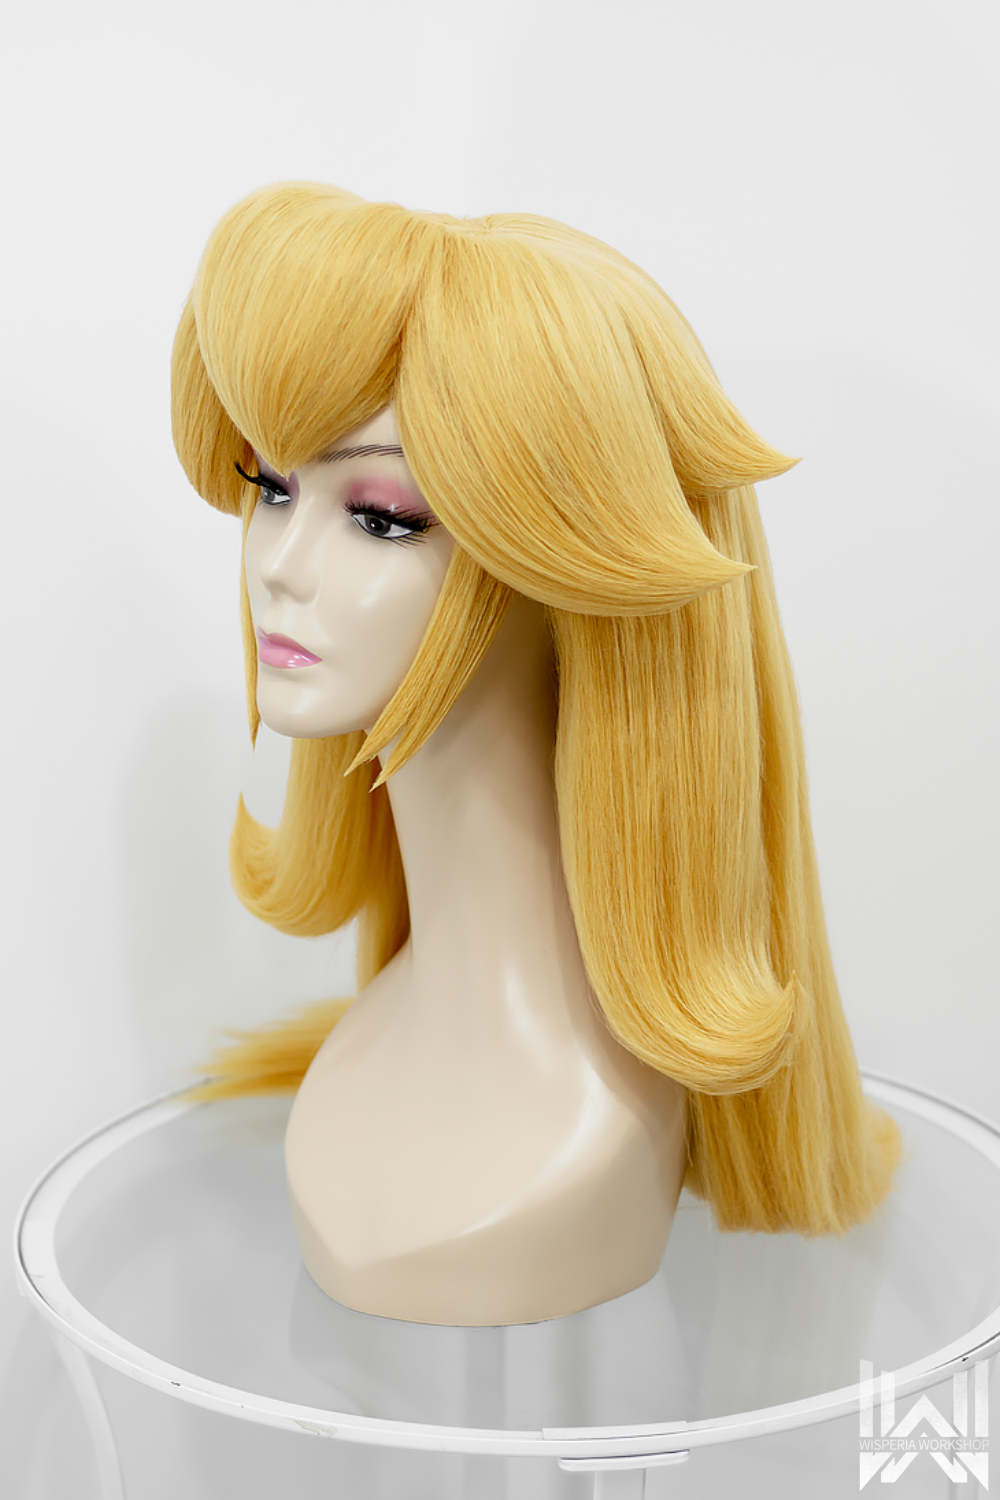 Princess Peach Wig Wisperia Workshop